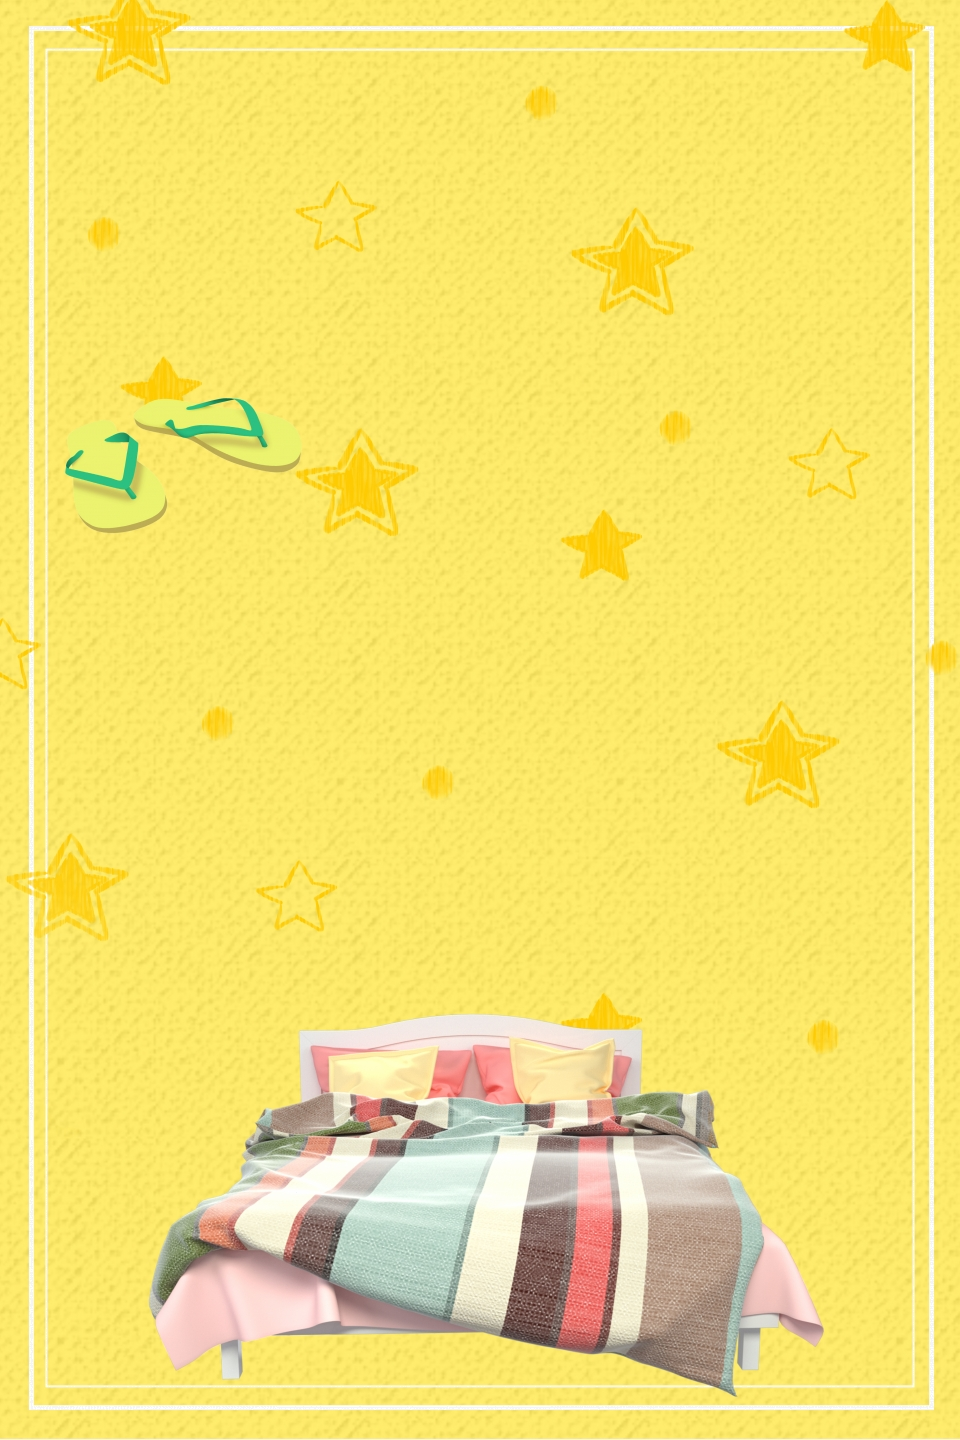 Room Bedding Poster Background Psd